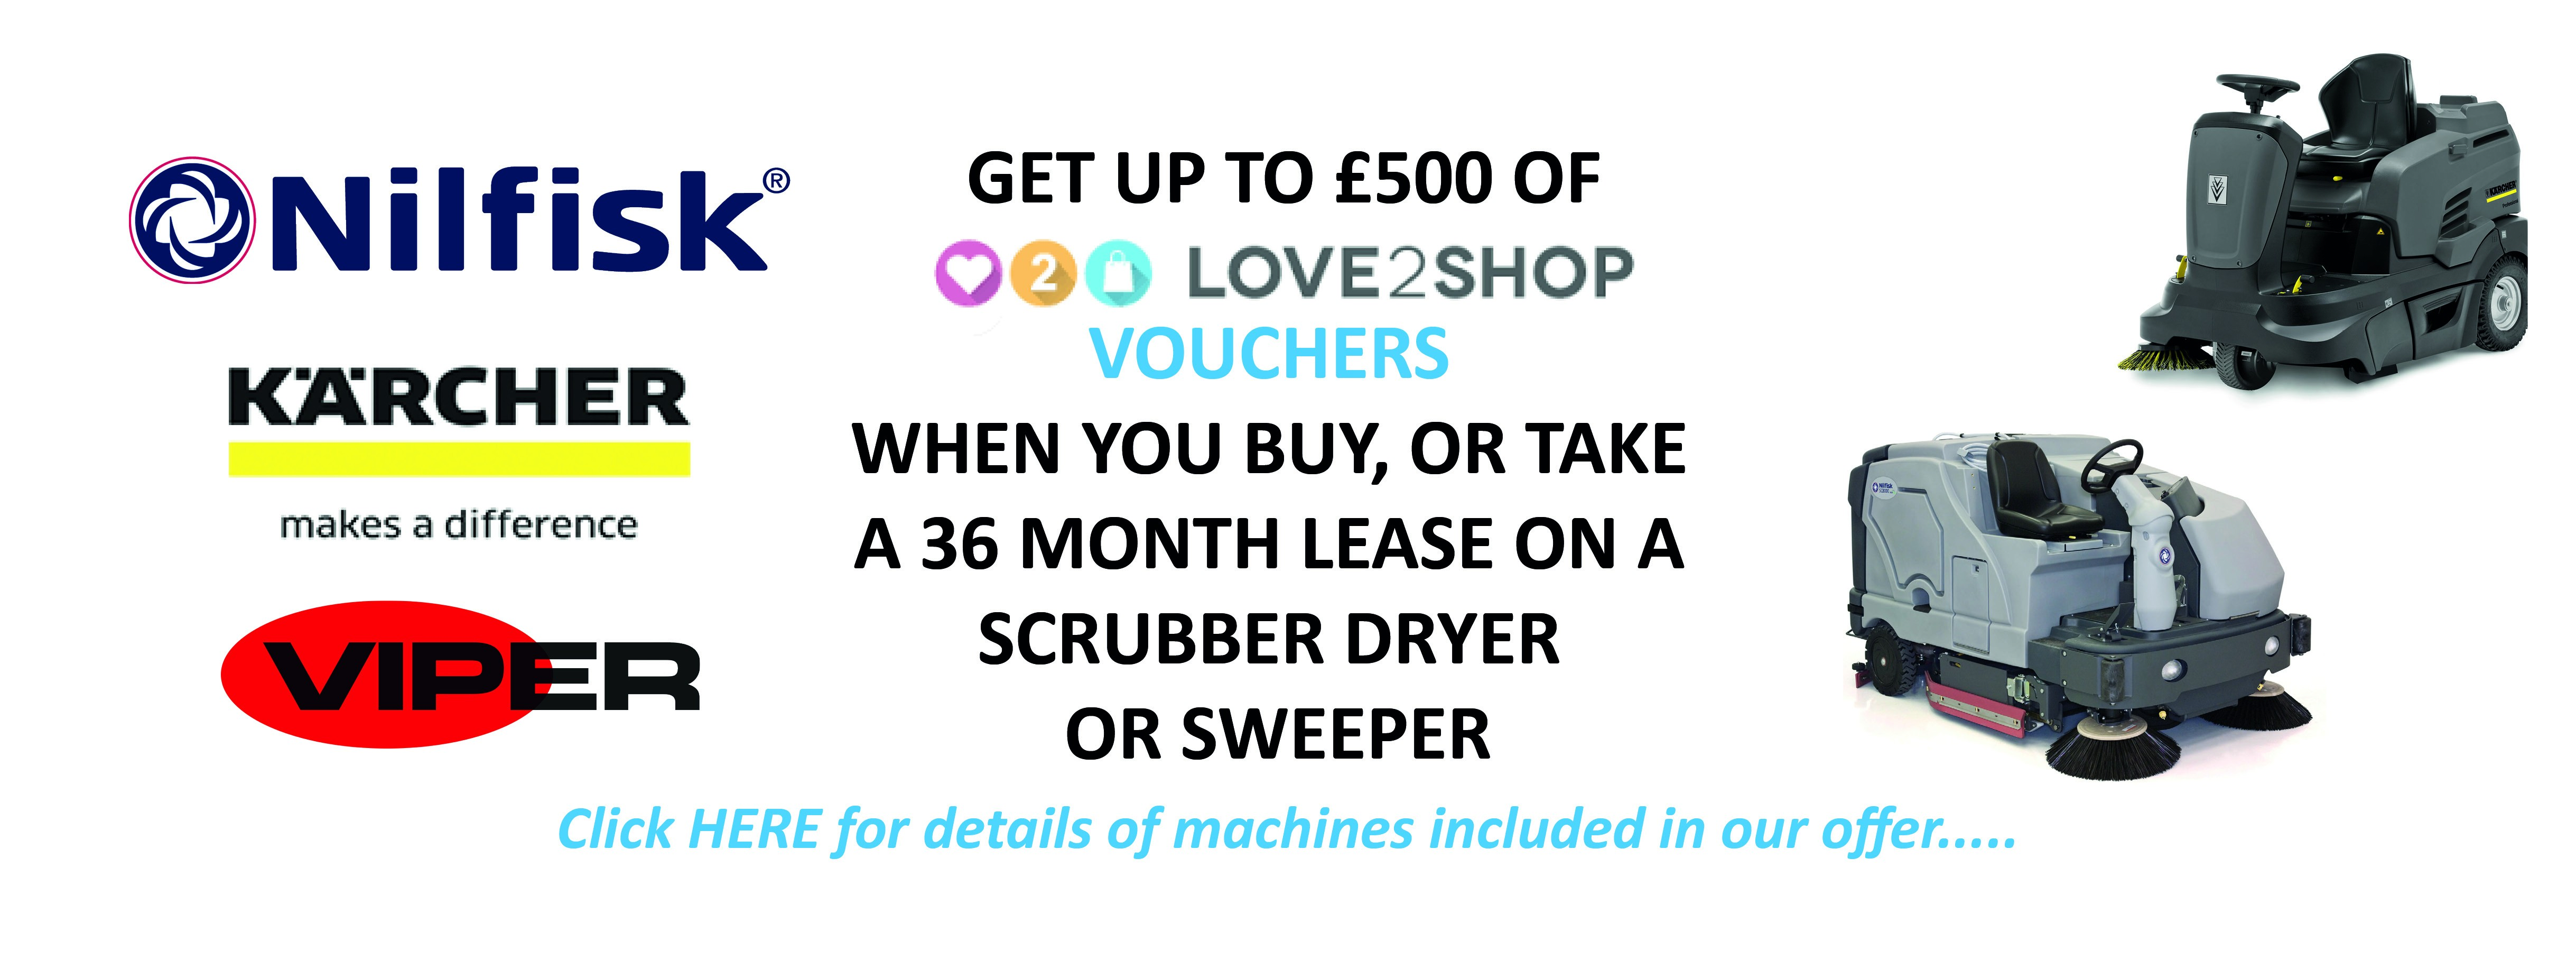 Get up to £500 of Love 2 Shop Vouchers when you buy or long term hire floor cleaning equipment